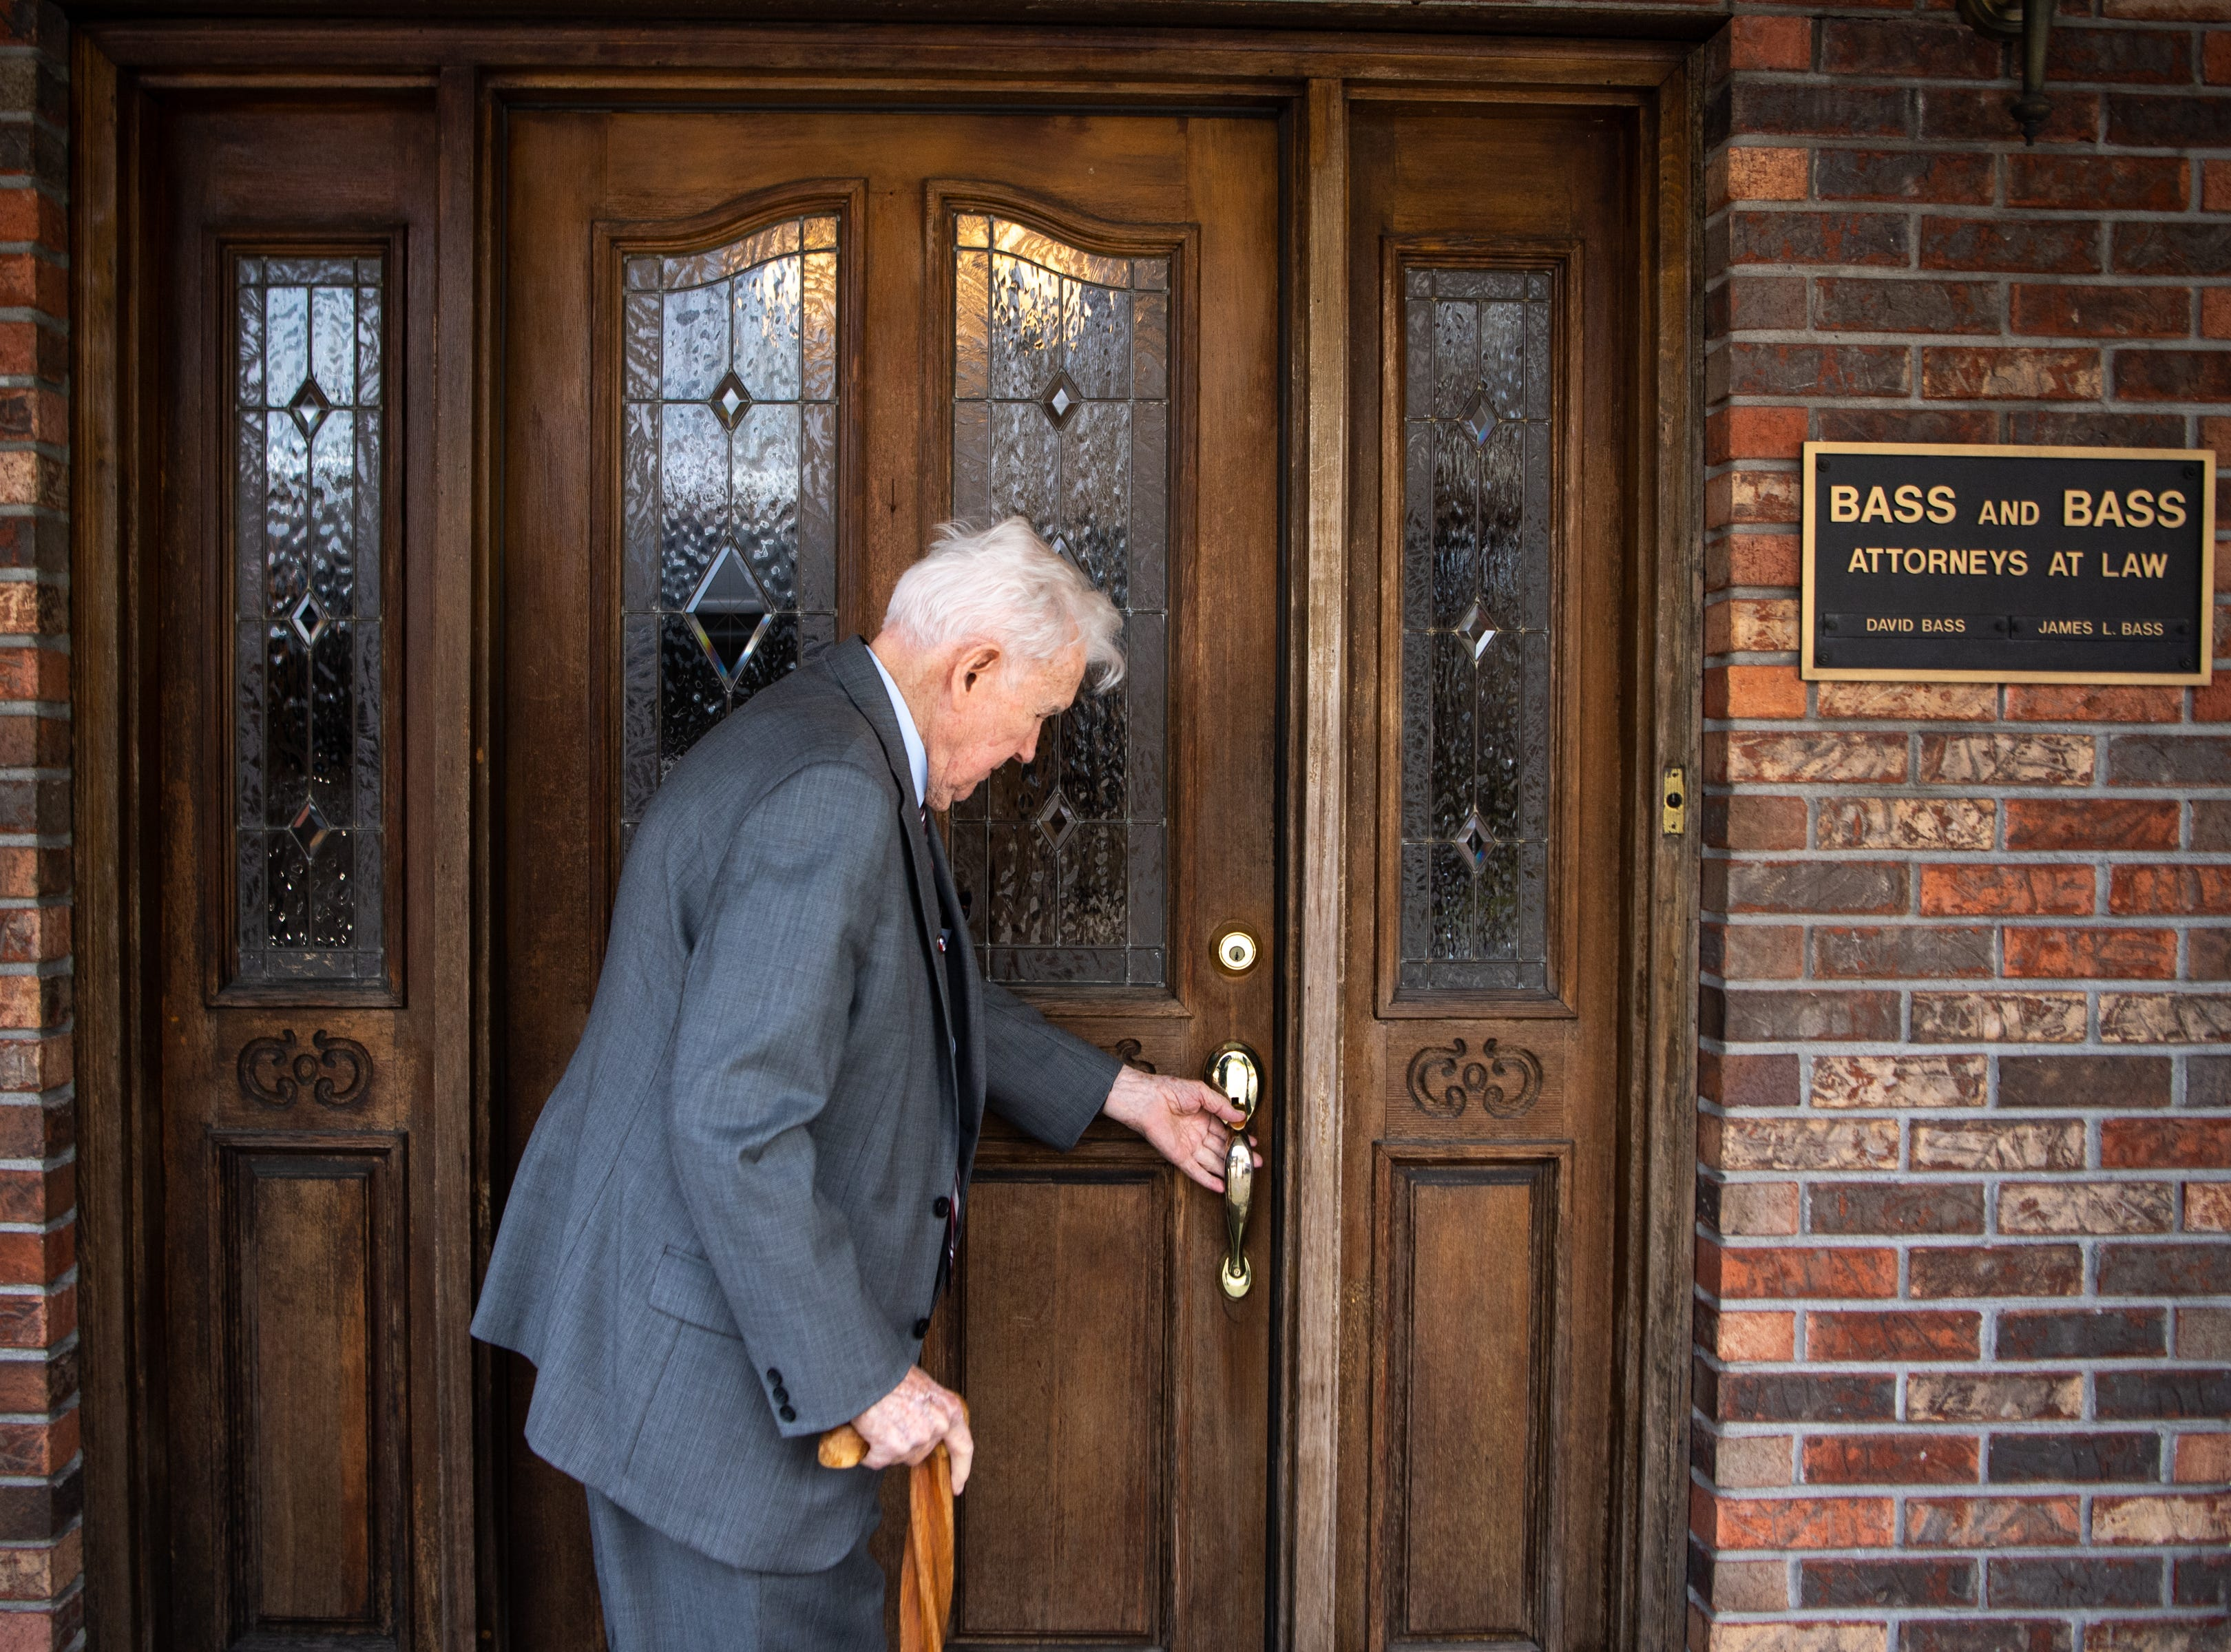 James L. Bass, 97, walks back into Bass & Bass Attorneys At Law after lunch Friday, March 29, 2019, in Carthage, Tenn. Bass still works five days a week at the family law firm after starting there 70 years ago. Bass served in World War II, went back to school to pursue a law degree and graduated Vanderbilt University School of Law in 1949.